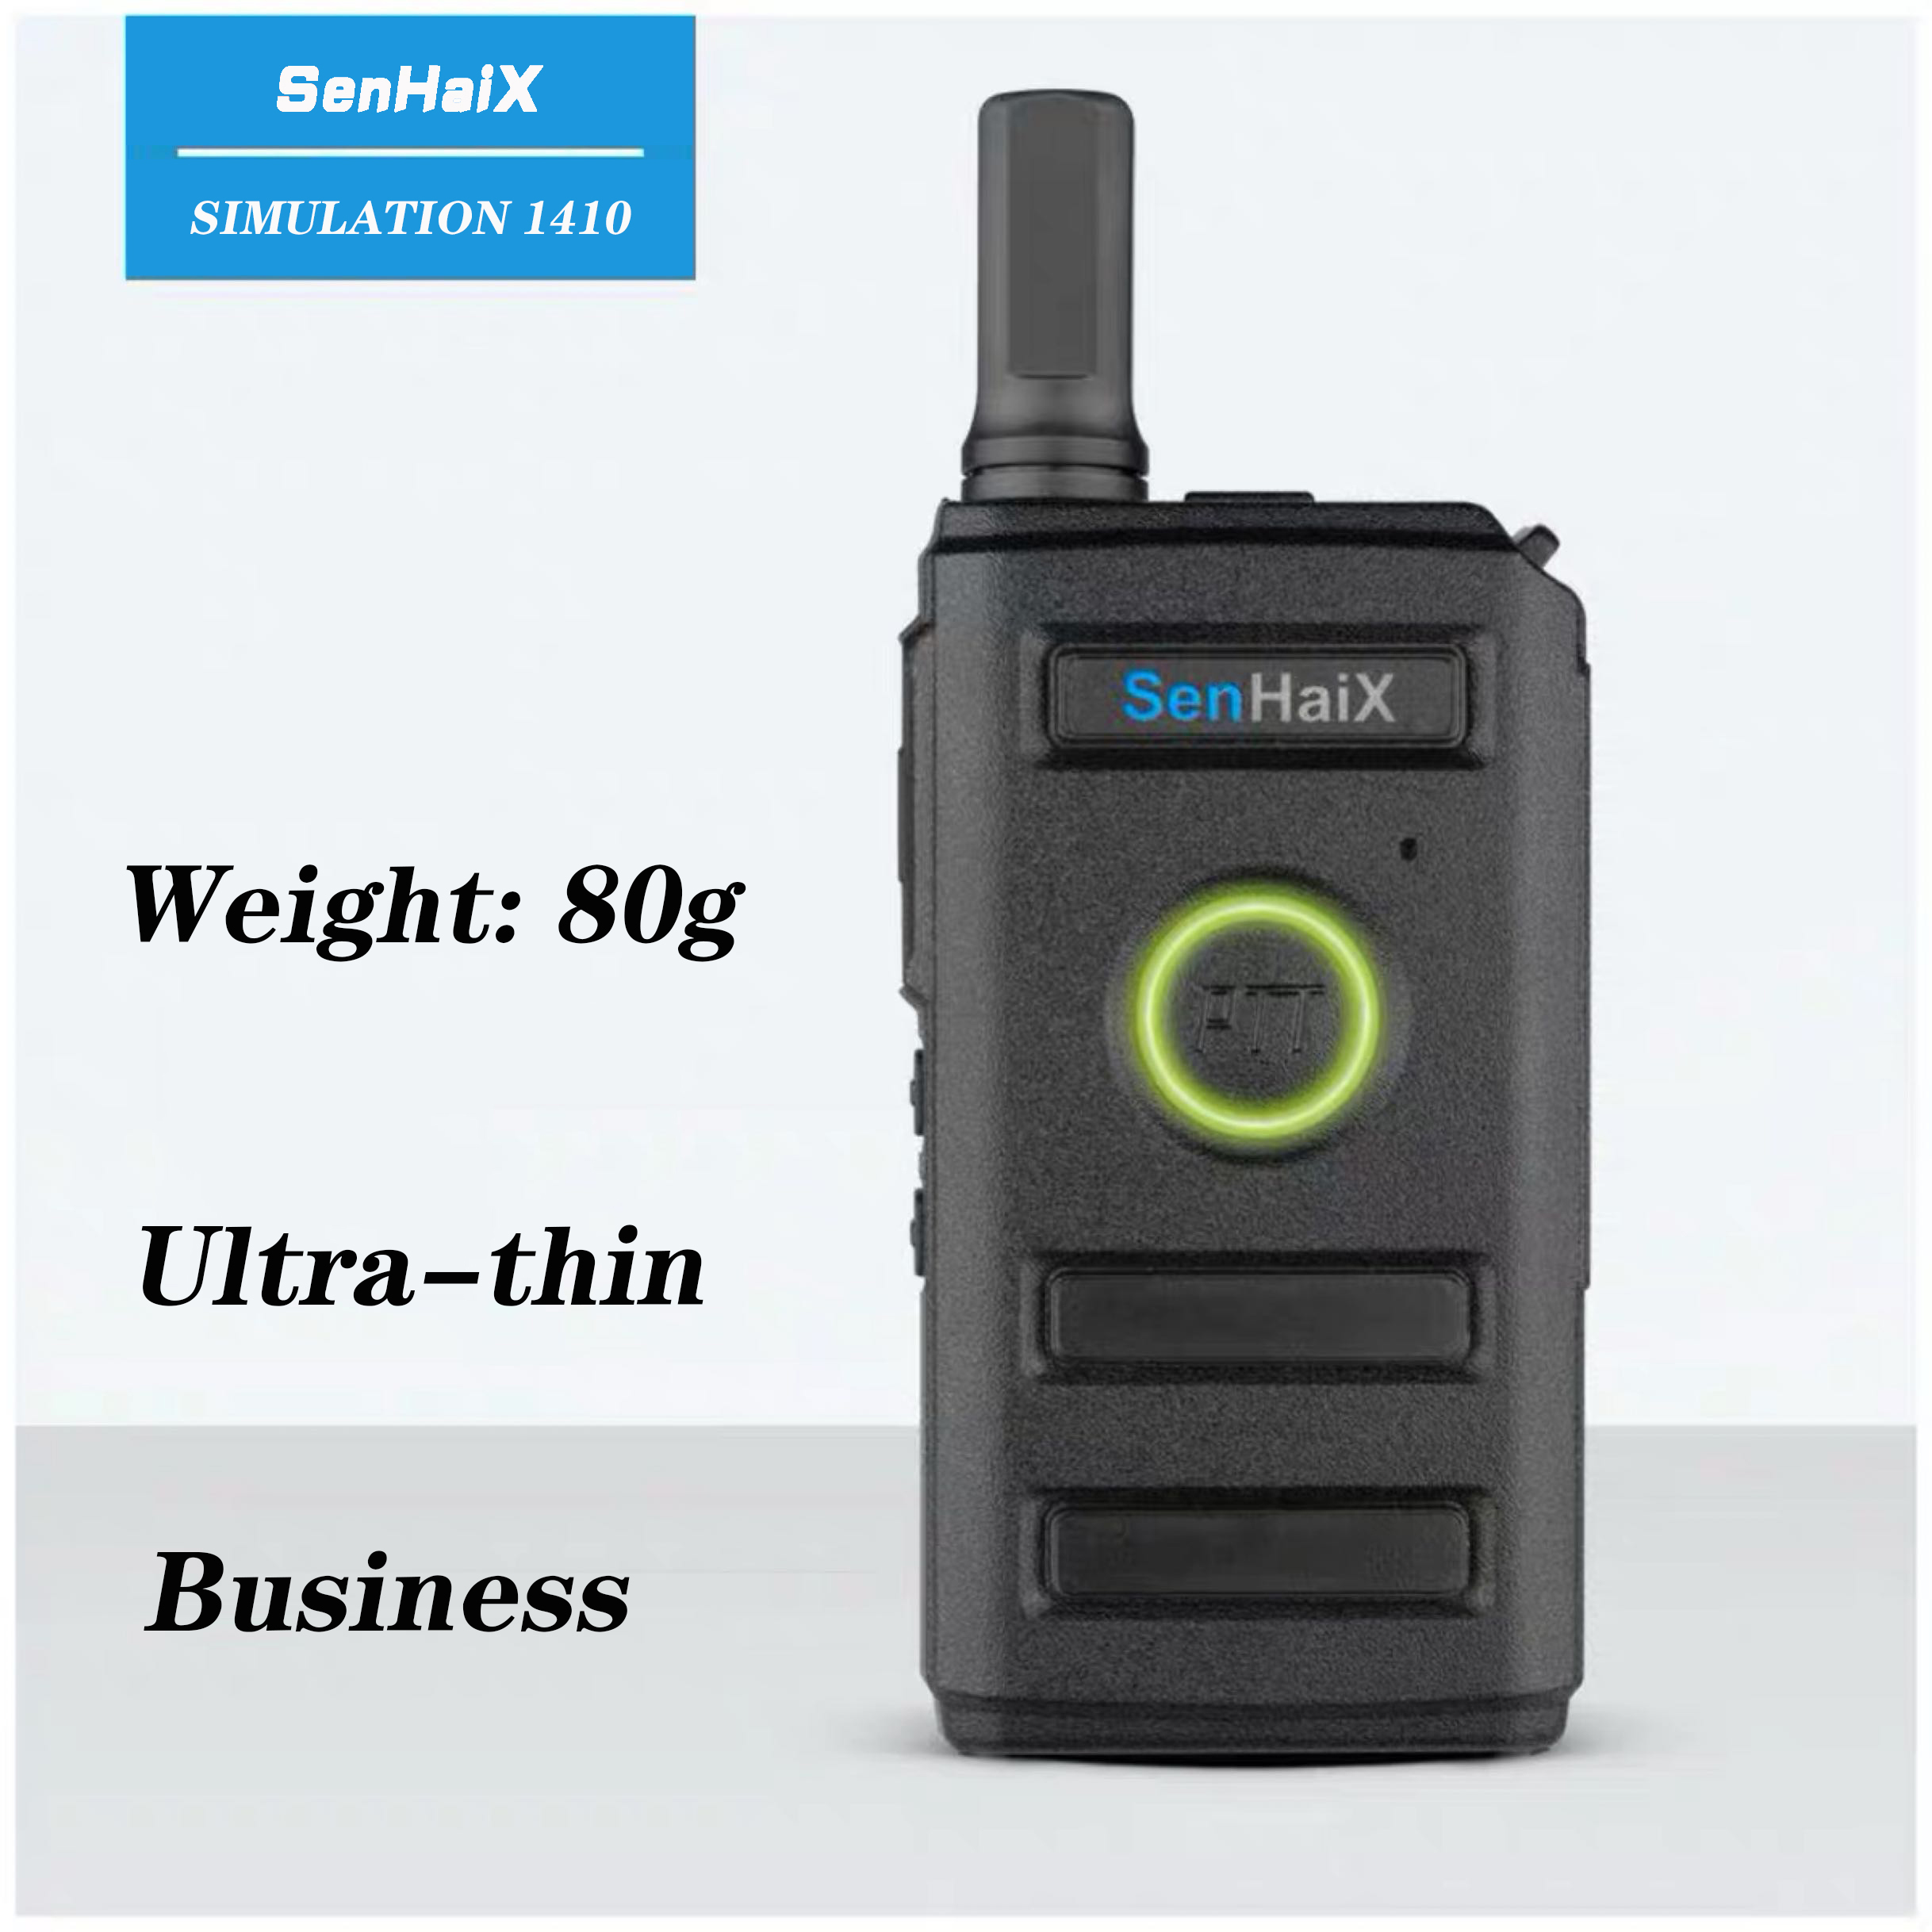 SenHaiX 1410 Walkie Talkie 5W UHF 400-470MHz CTCSS DCS  Ham 2-Way Radio Earpiece